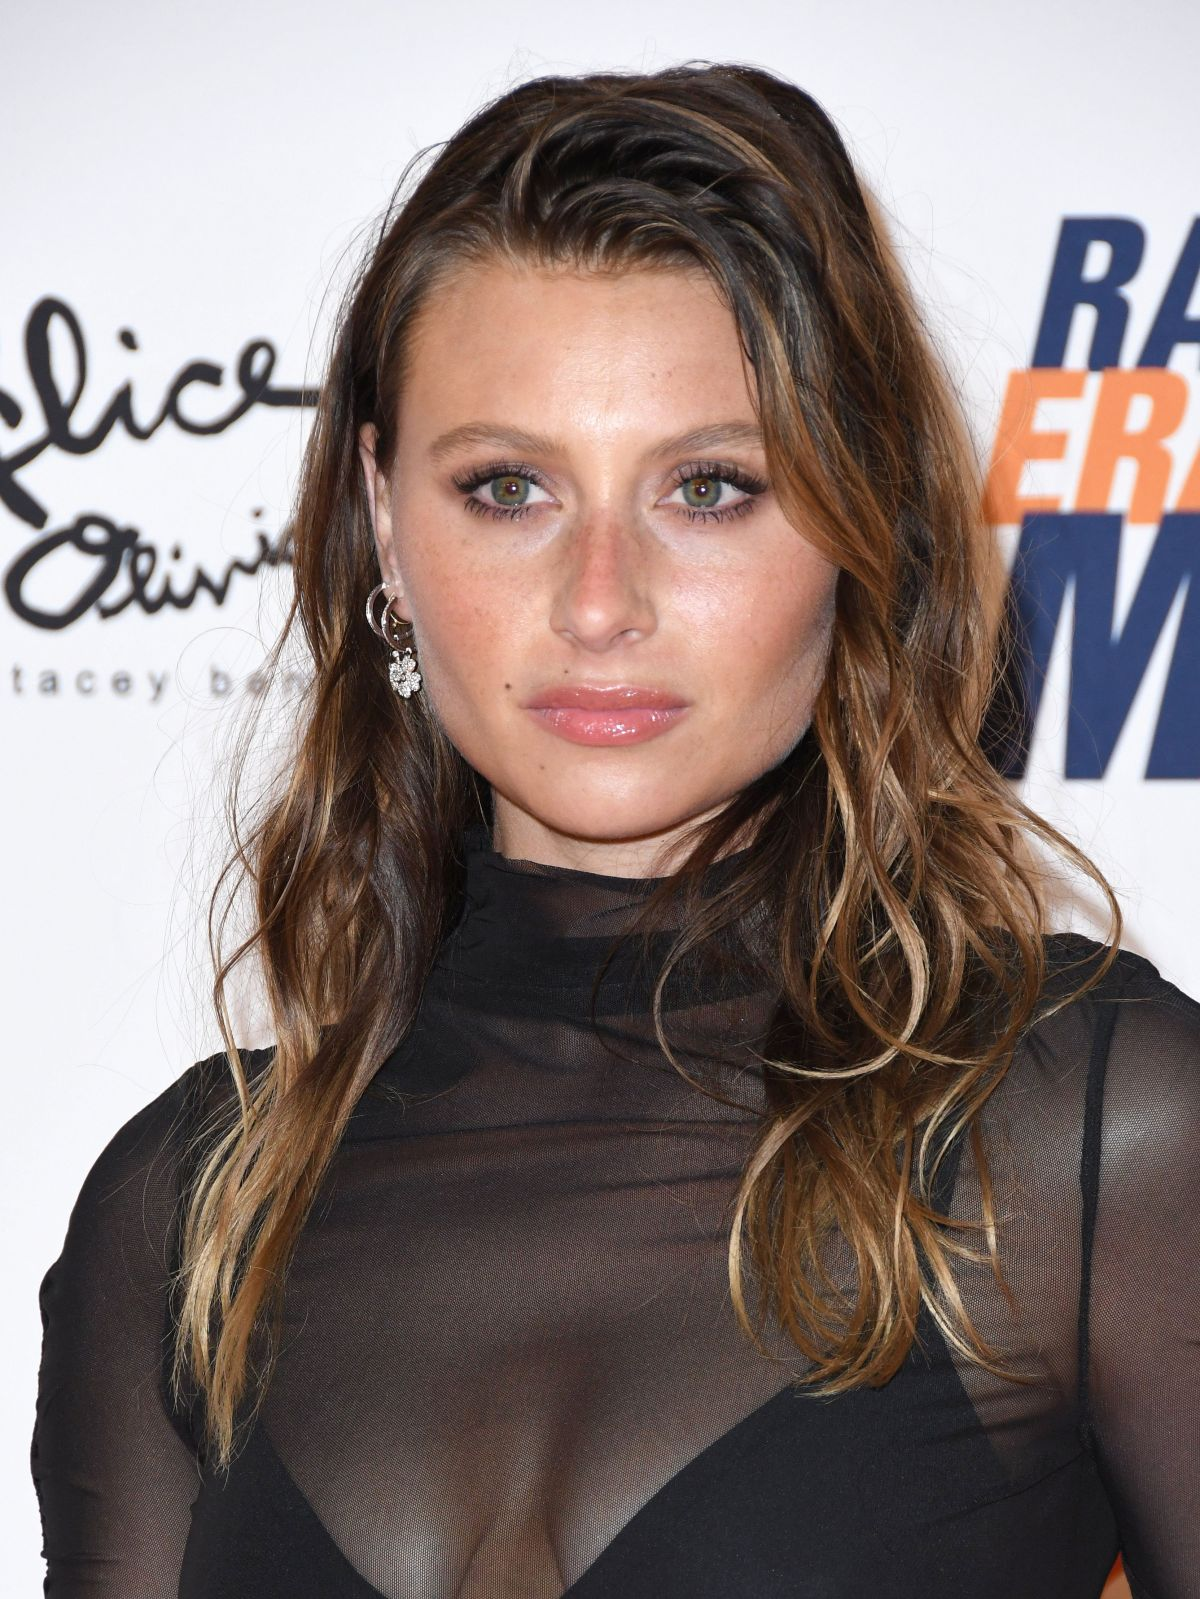 Fotos Aly Michalka naked (35 photos), Boobs